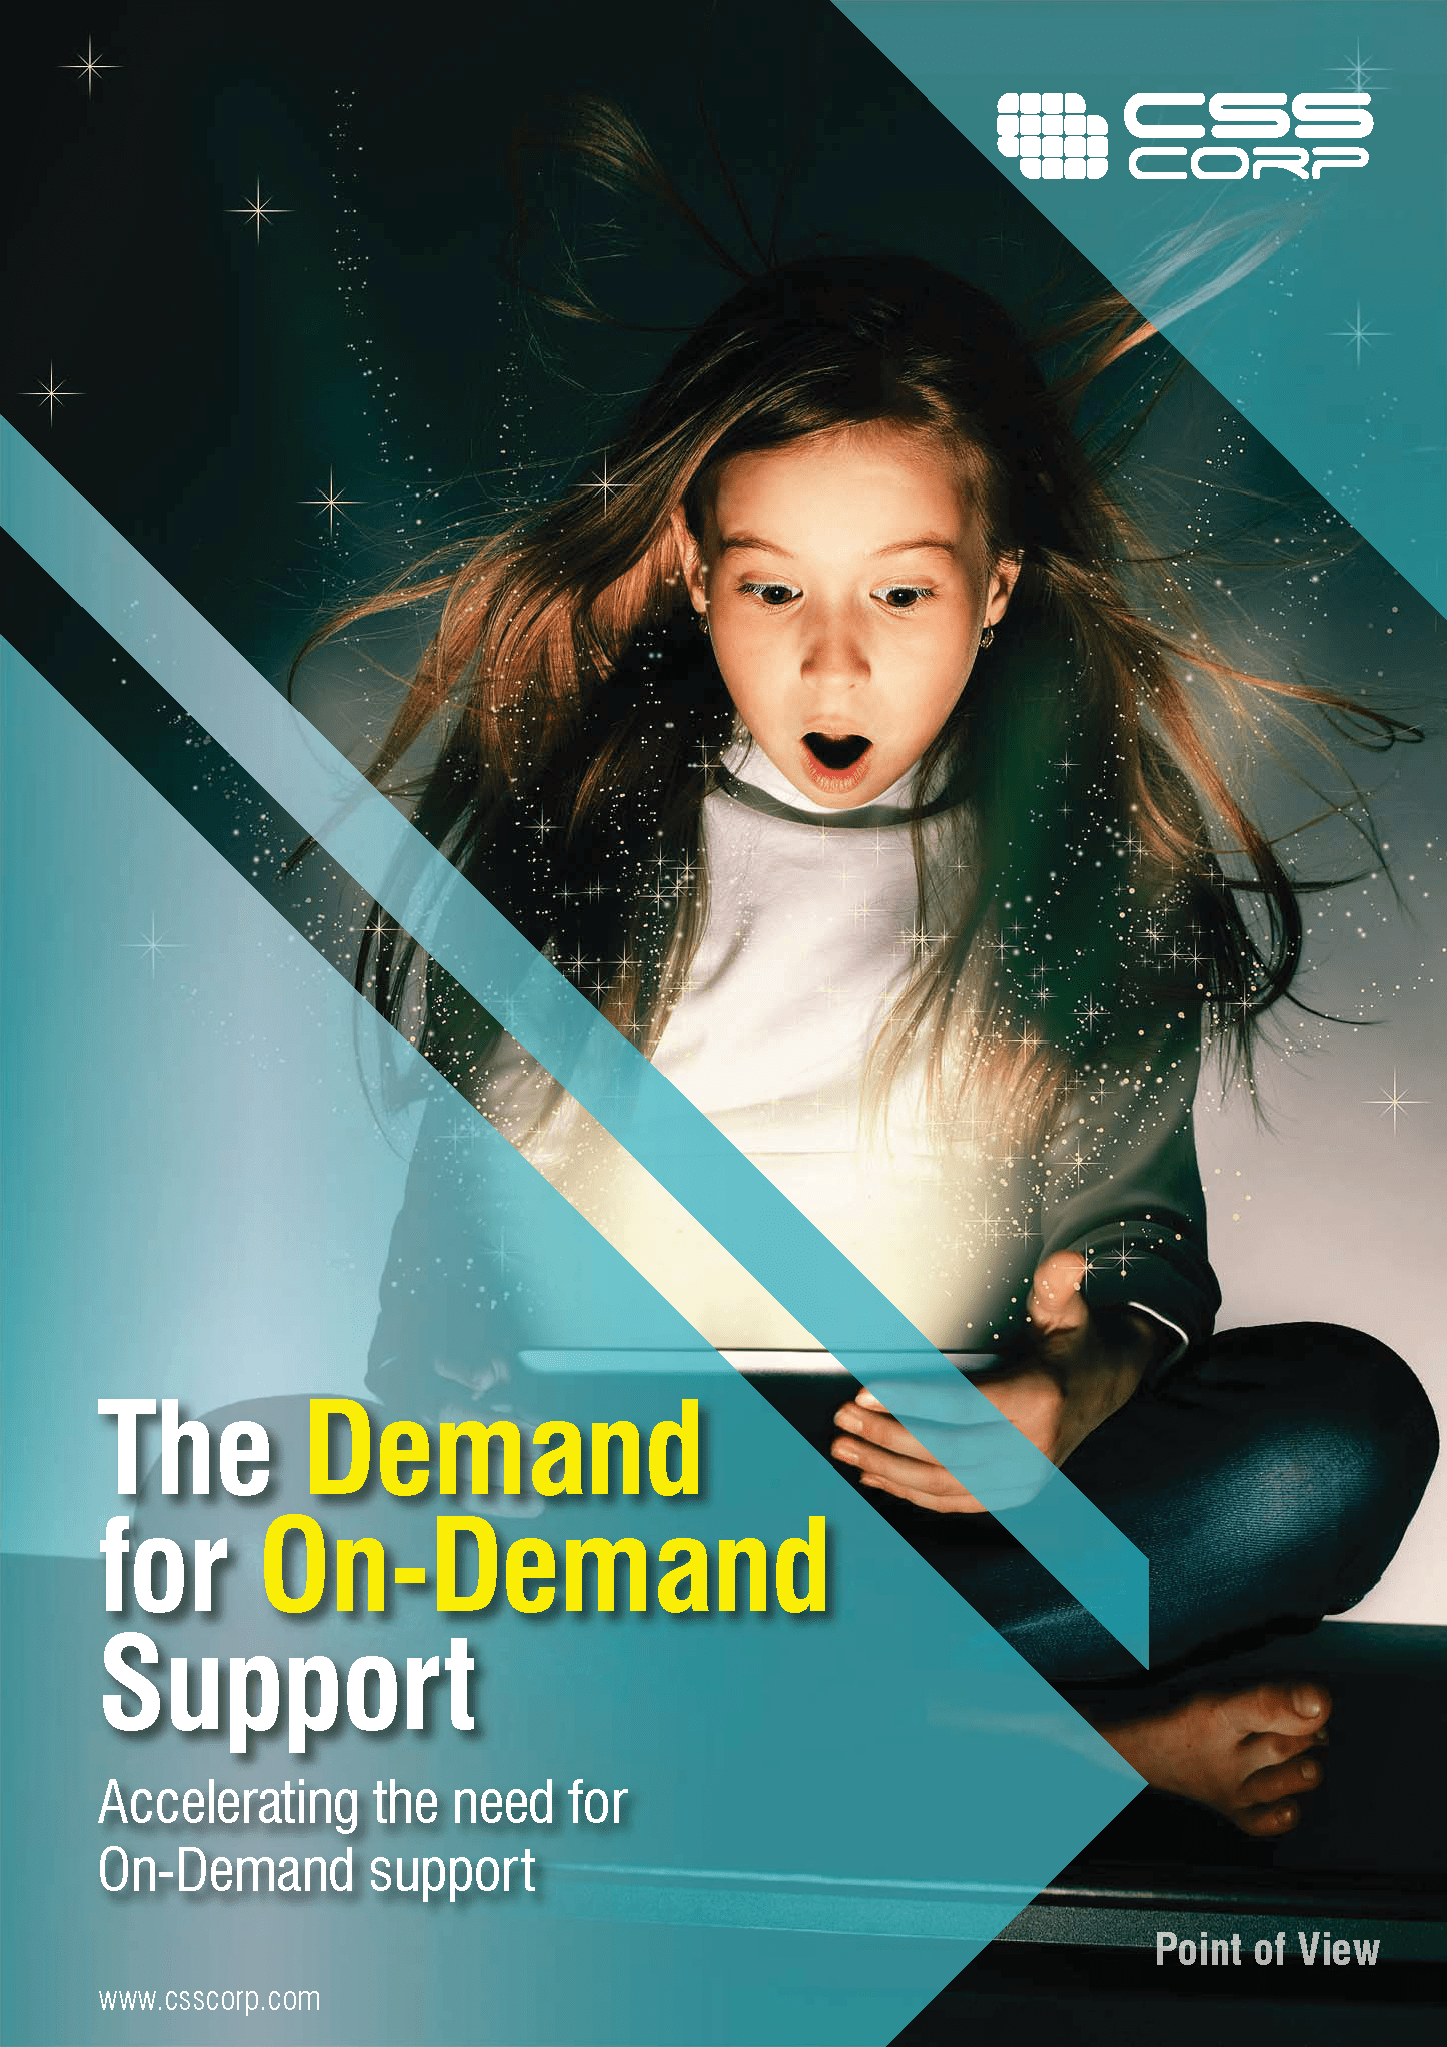 The demand for on-demand support